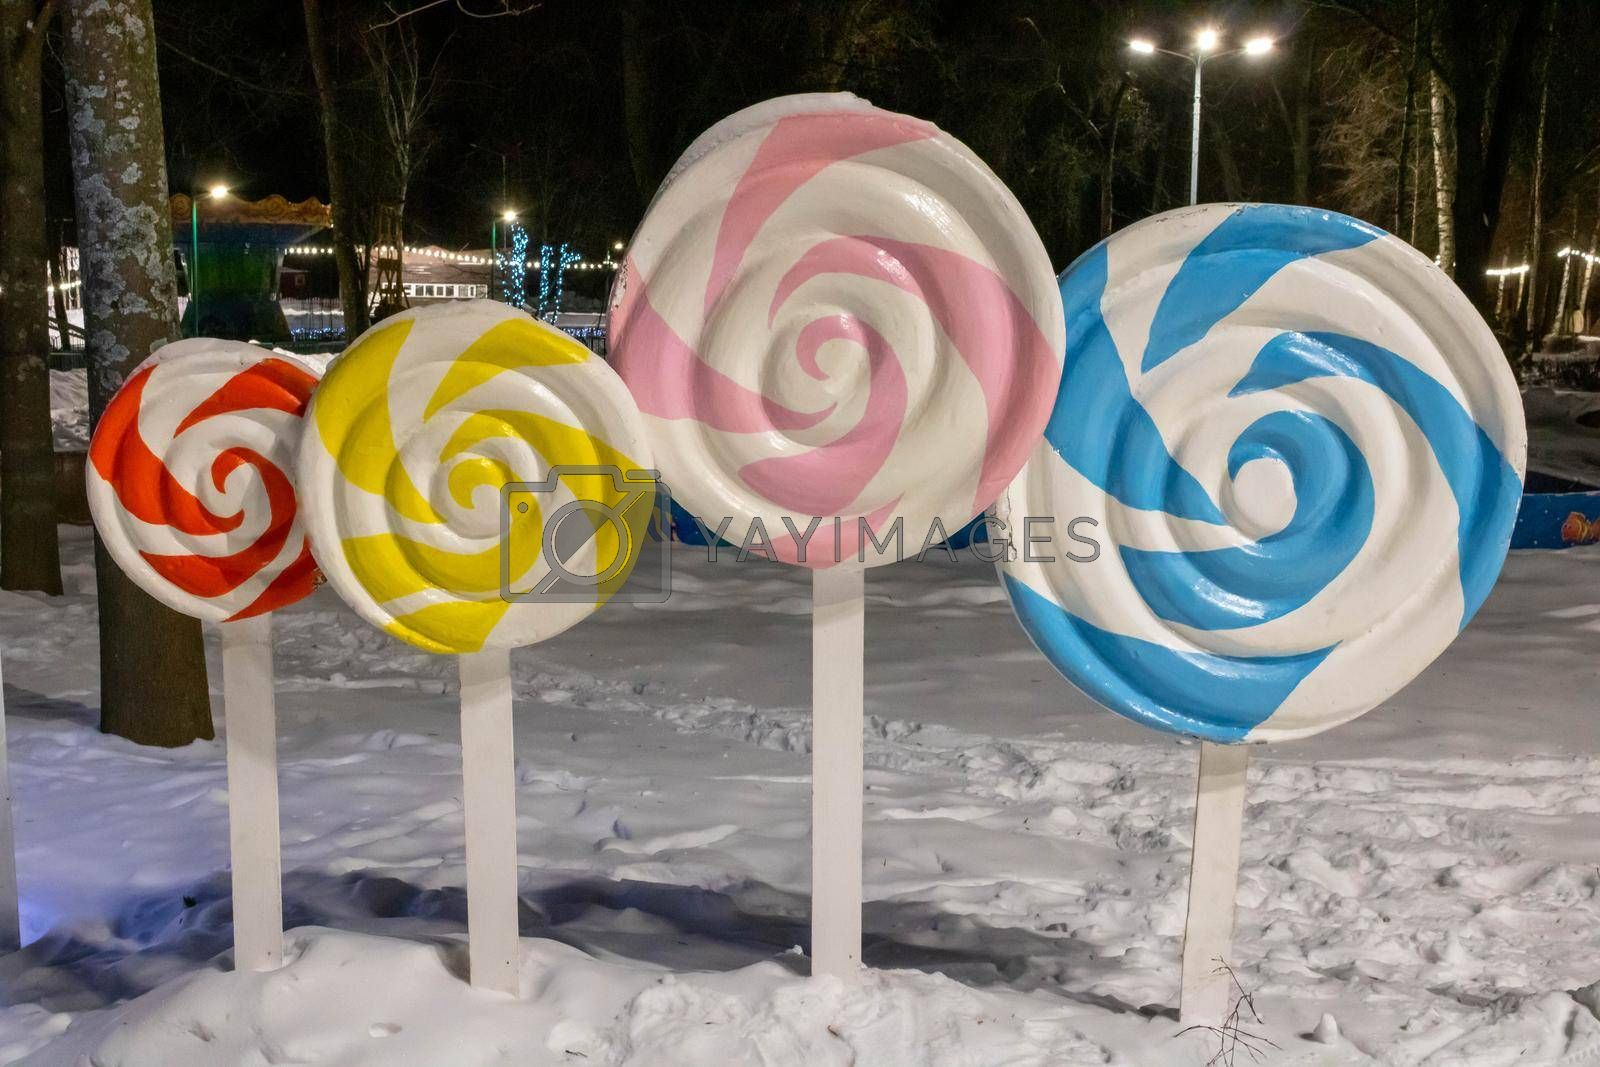 In the park there are colorful candy decorations, a colorful spiral lollipop.Winter Park.